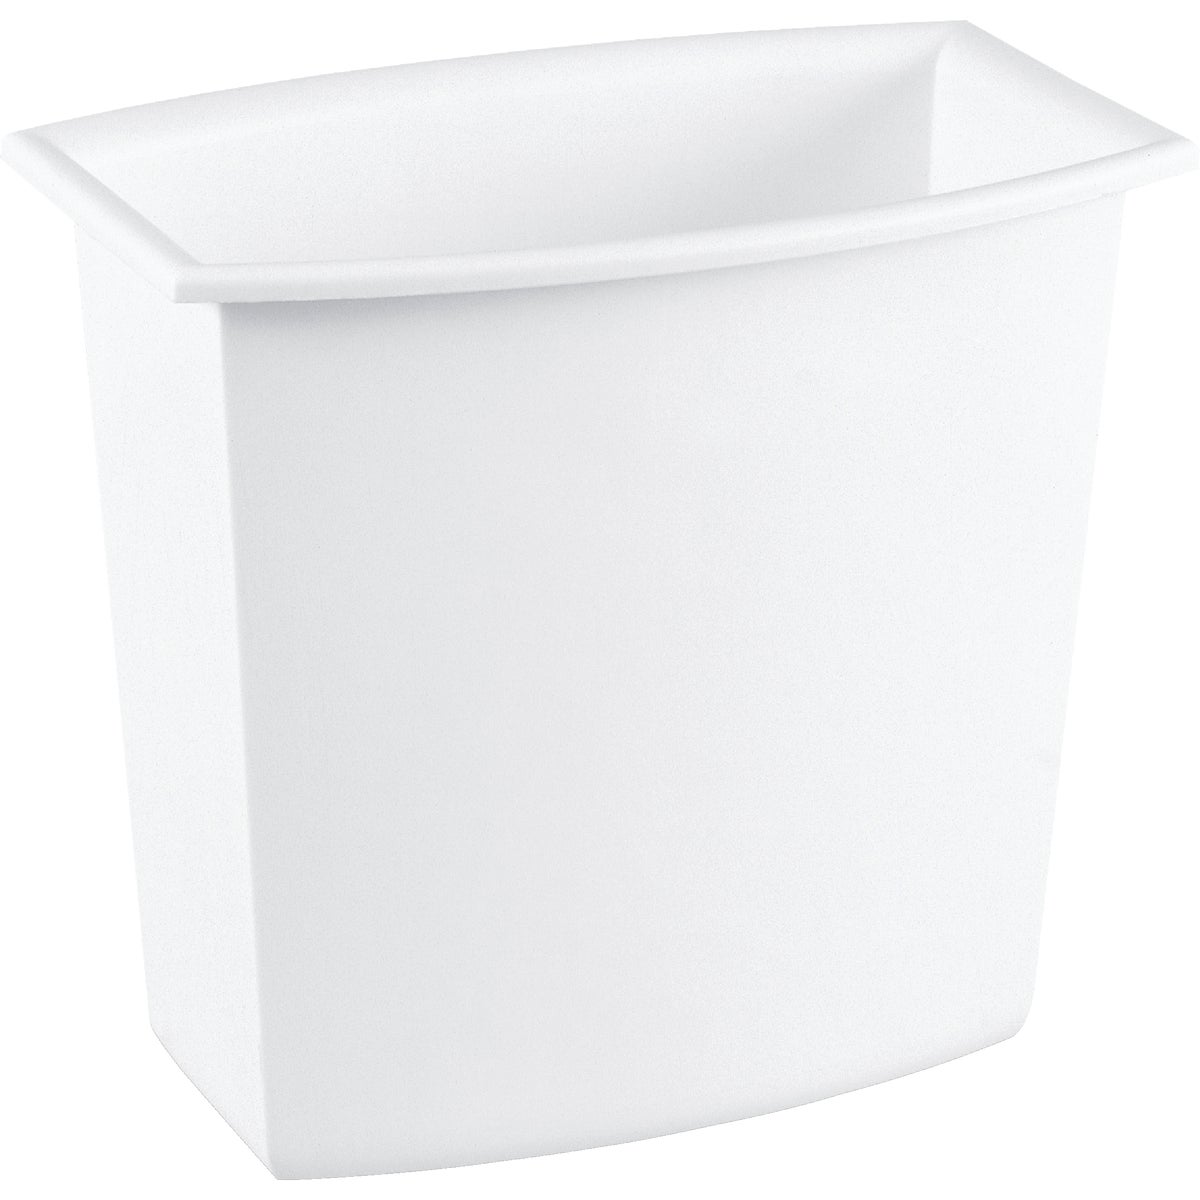 8 QUART RECT WASTEBASKET - 10220012 by Sterilite Corp